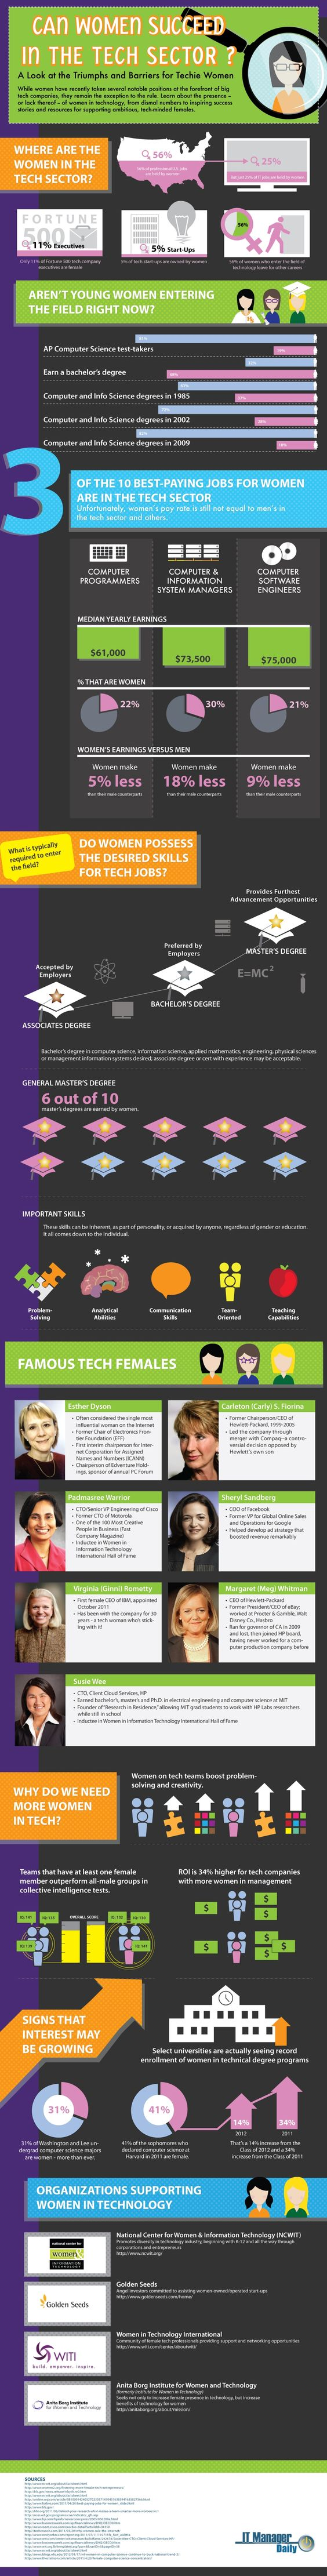 Only 5% of Startups are Founded by Women [Infographic]